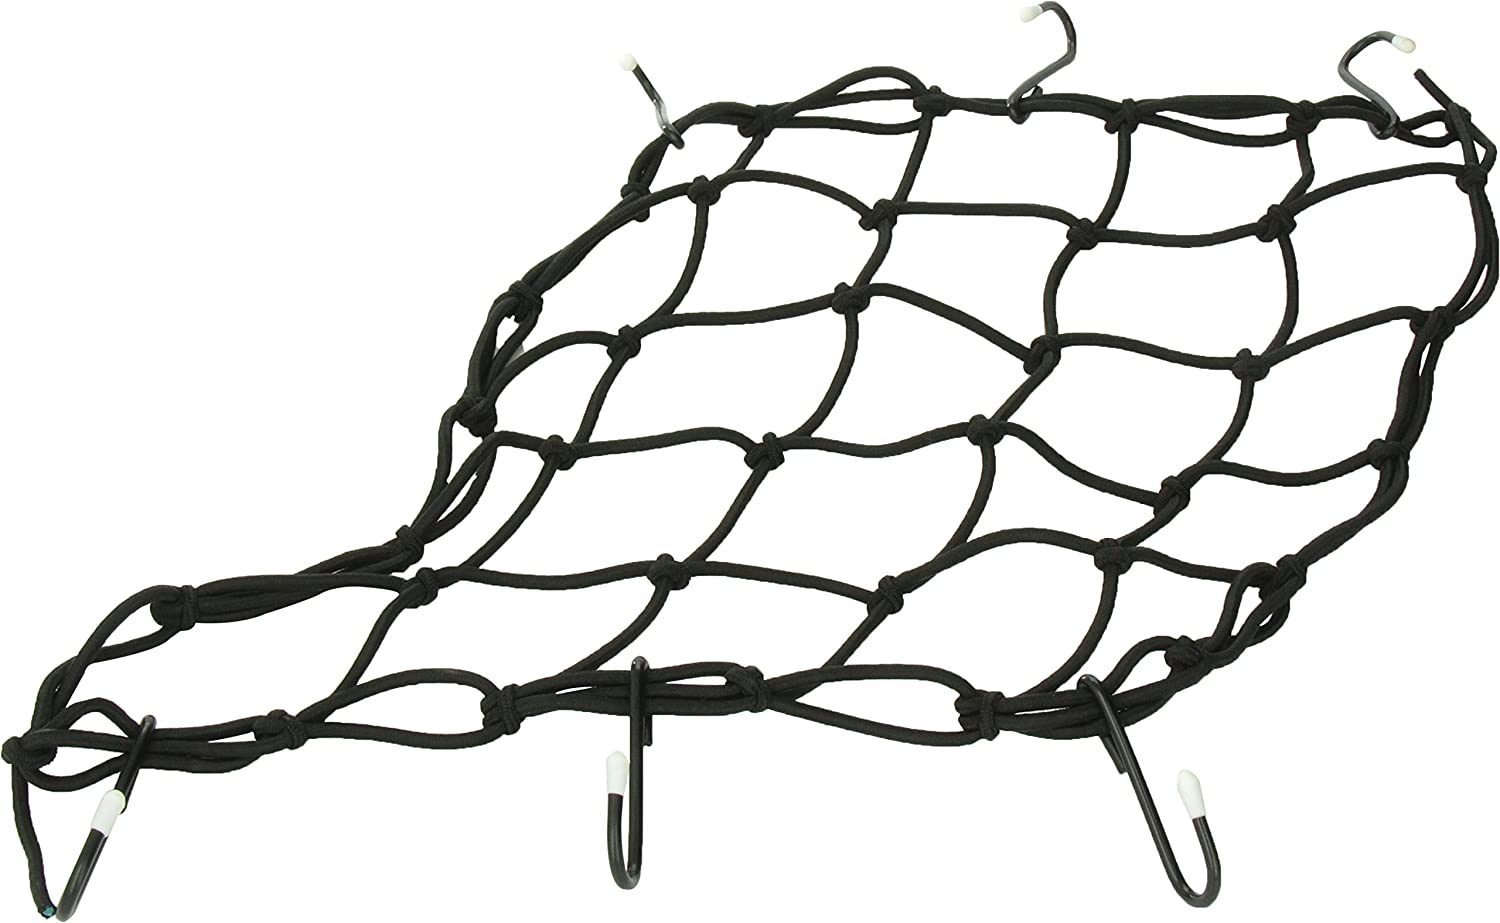 Keeper 06143 Motorcycle/ATV Cargo Net, 15' x 15' with 6 Hooks 15 x 15 with 6 Hooks